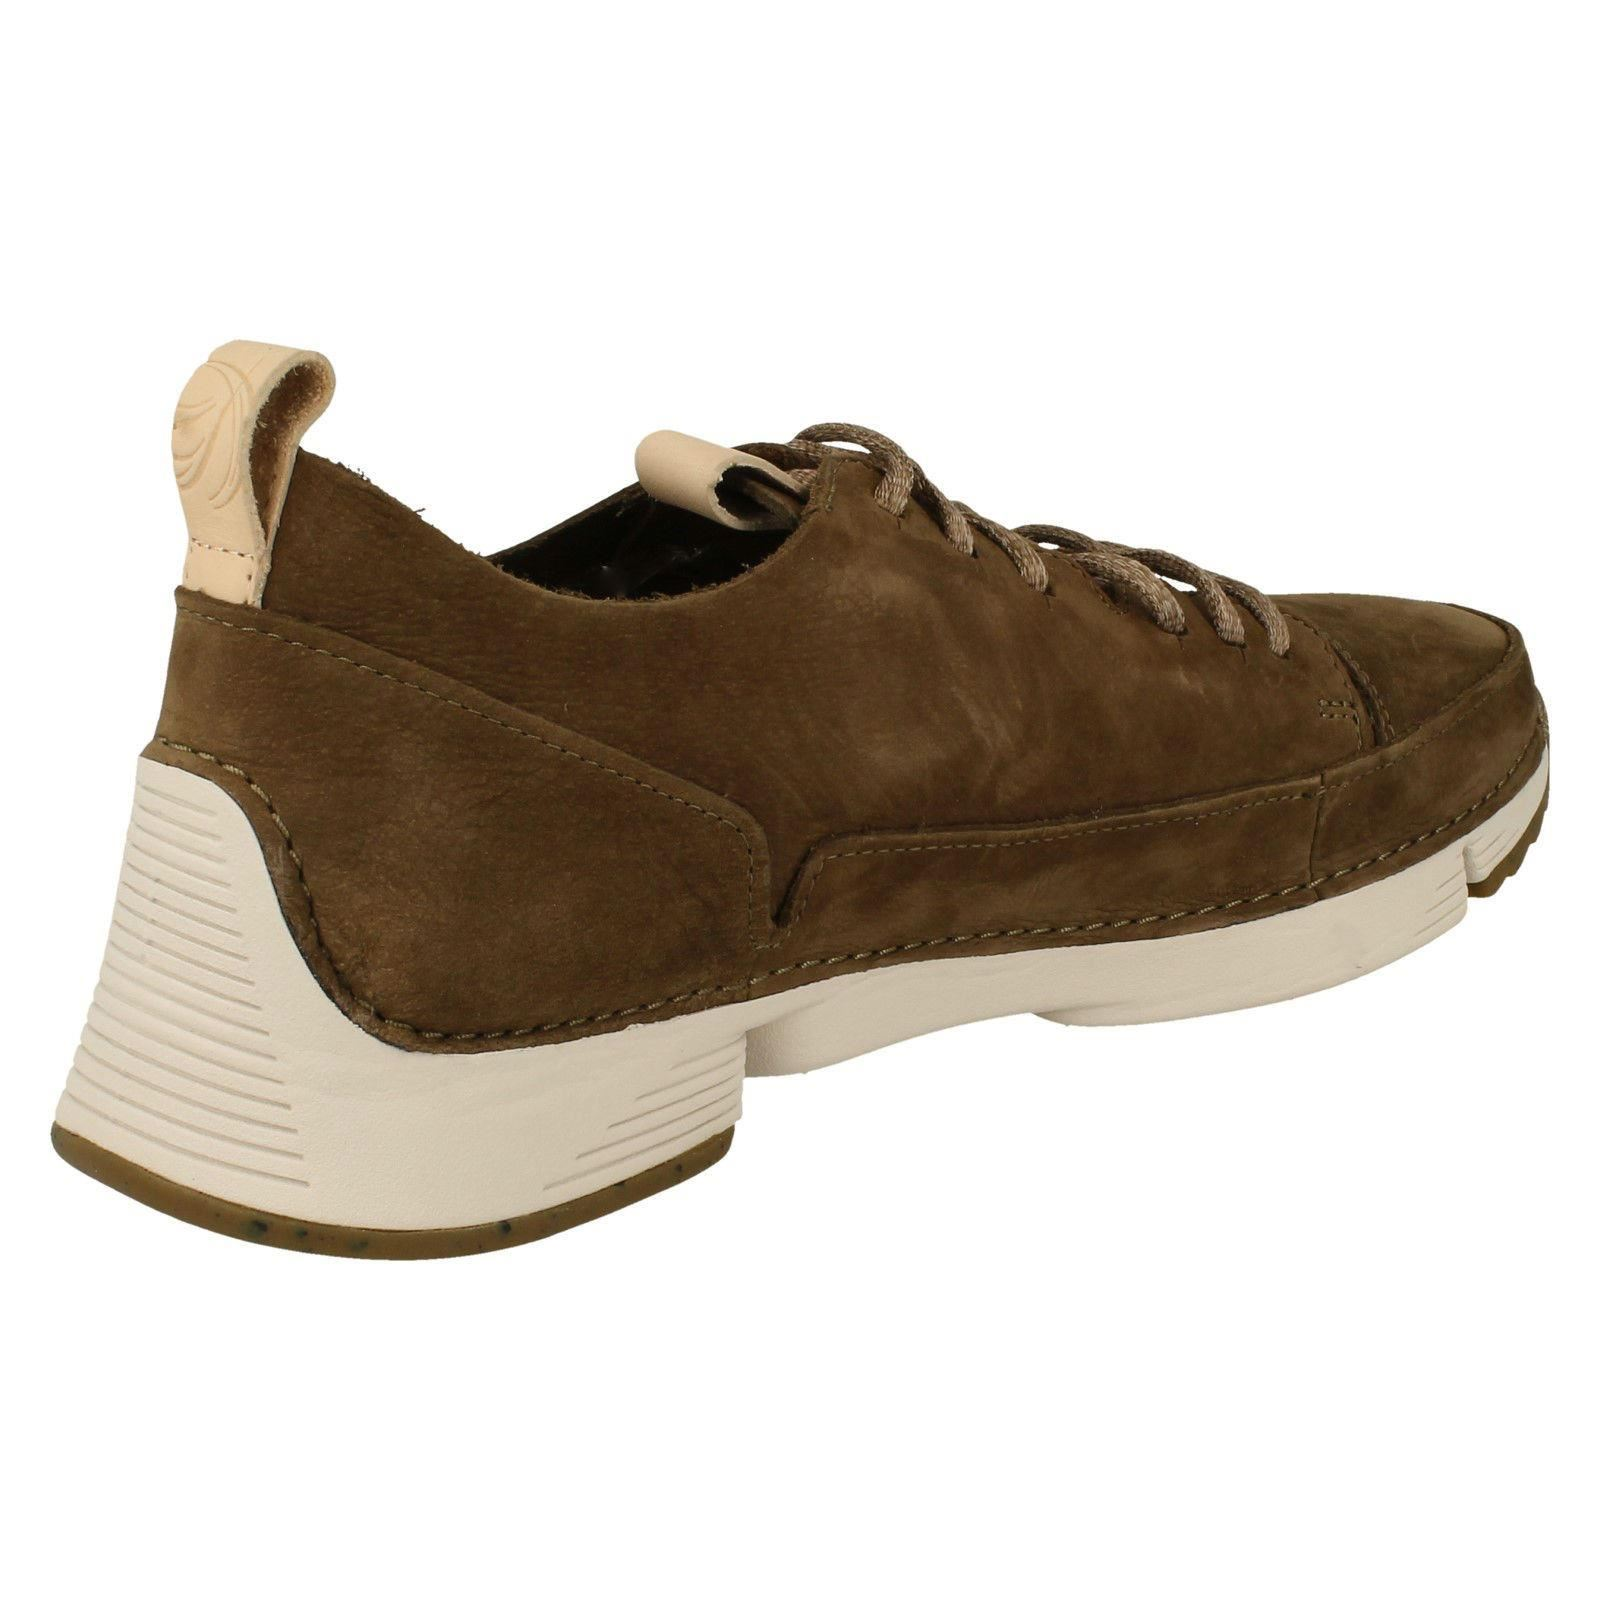 Mens Clarks Casual Casual Casual Lace Up Shoes 'Tri Spark' 10da1a